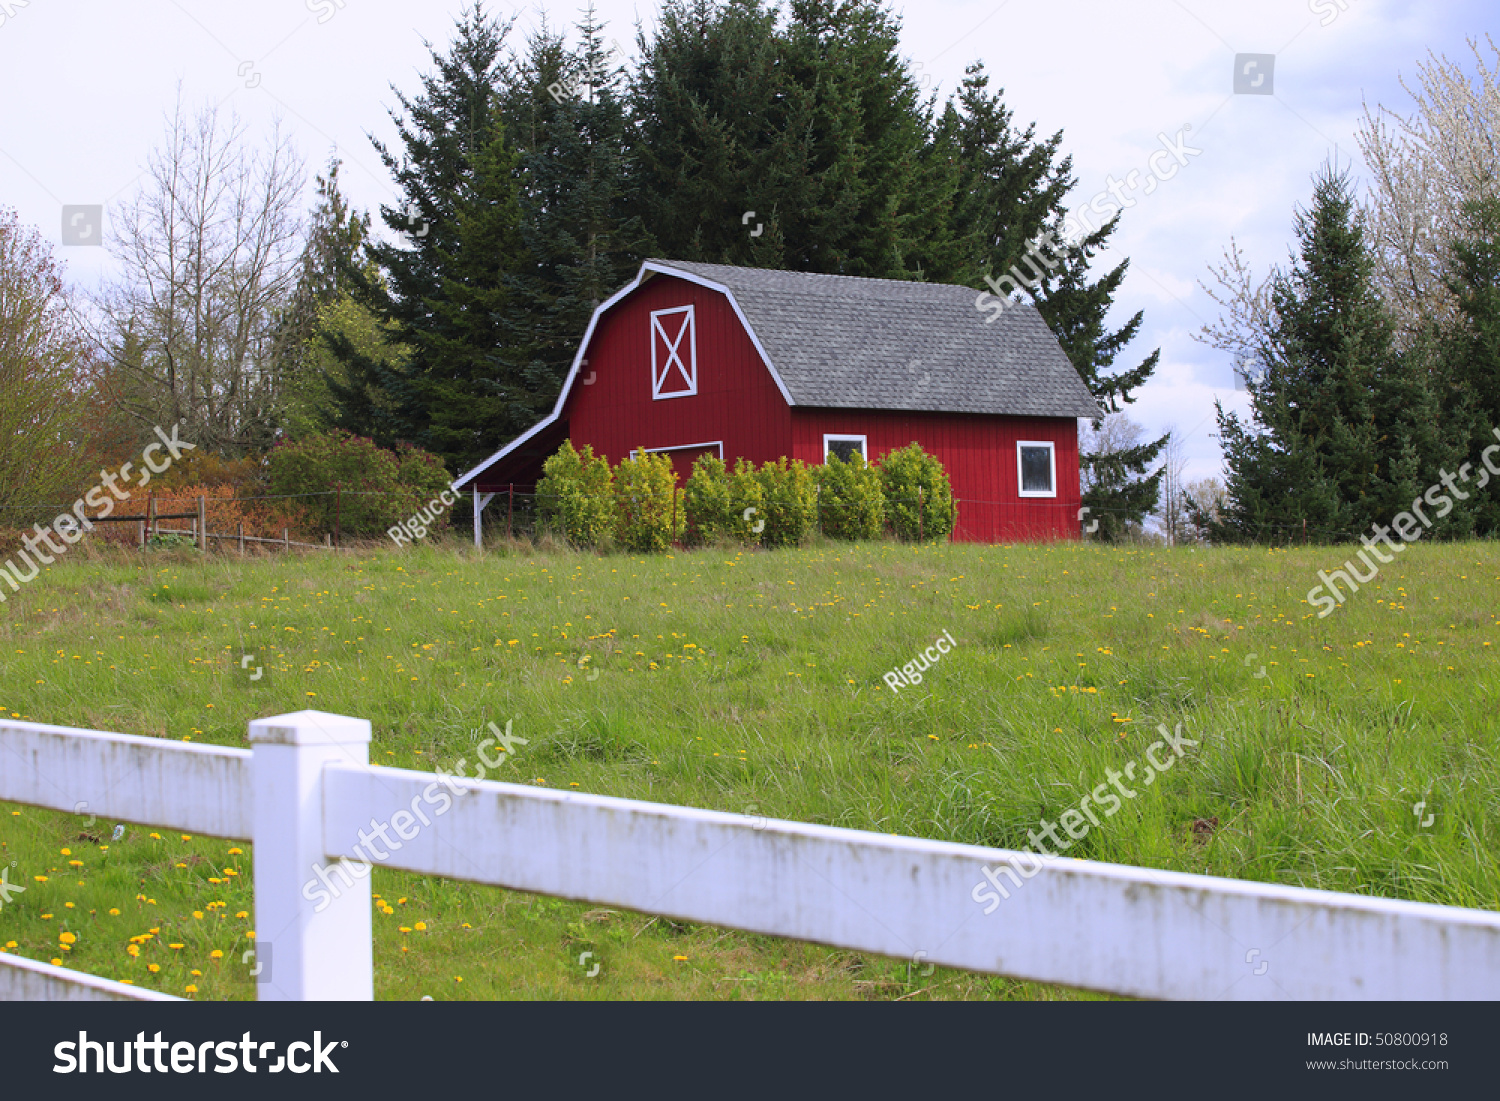 Red Barn House In A Country Stock Photo 50800918